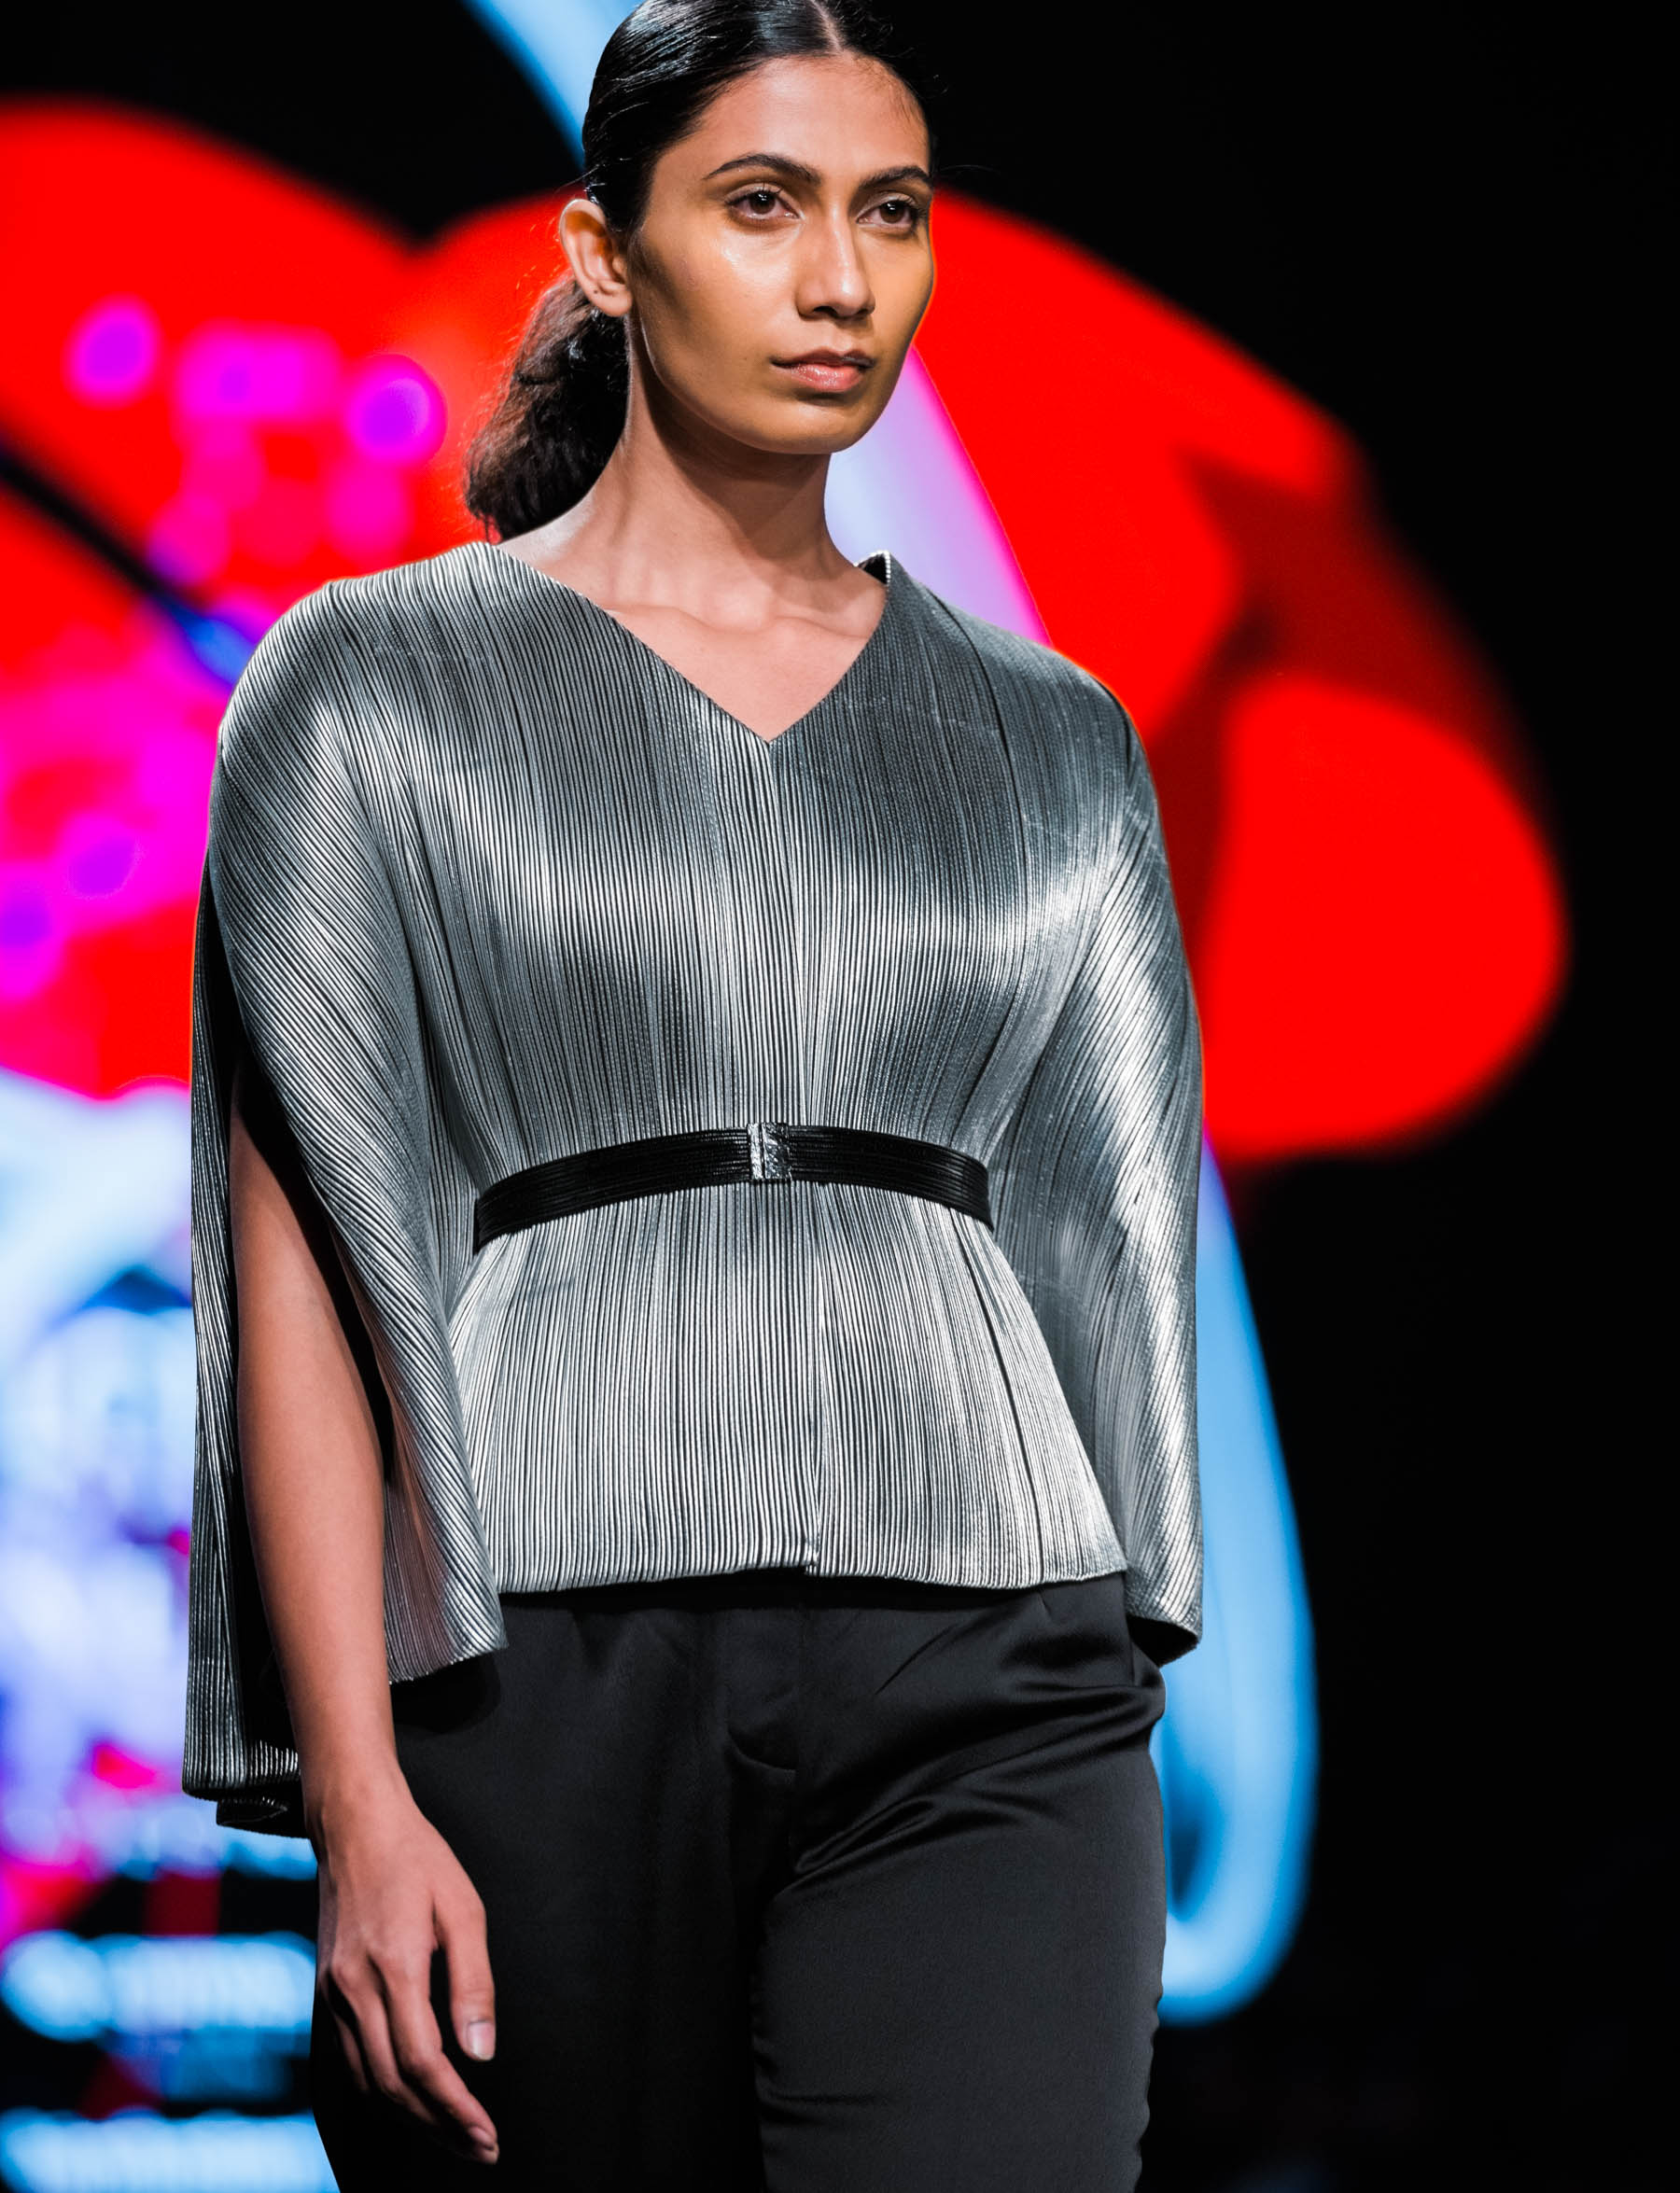 Naina Redhu, Naina.co, Rimzim Dadu, Fashion Designer, FDCI, Lotus MakeUp India Fashion Week Spring Summer 2019, LMIFWSS19, LMIFW, India Fashion Week, Fashion Week Delhi, MadeInIndia, Made In India, EyesForFashion, Professional Photographer, Blogger, Fashion Photographer, Lifestyle Photographer, Luxury Photographer, Delhi Photographer, Gurgaon Photographer, Delhi Blogger, Gurgaon Blogger, Indian Blogger